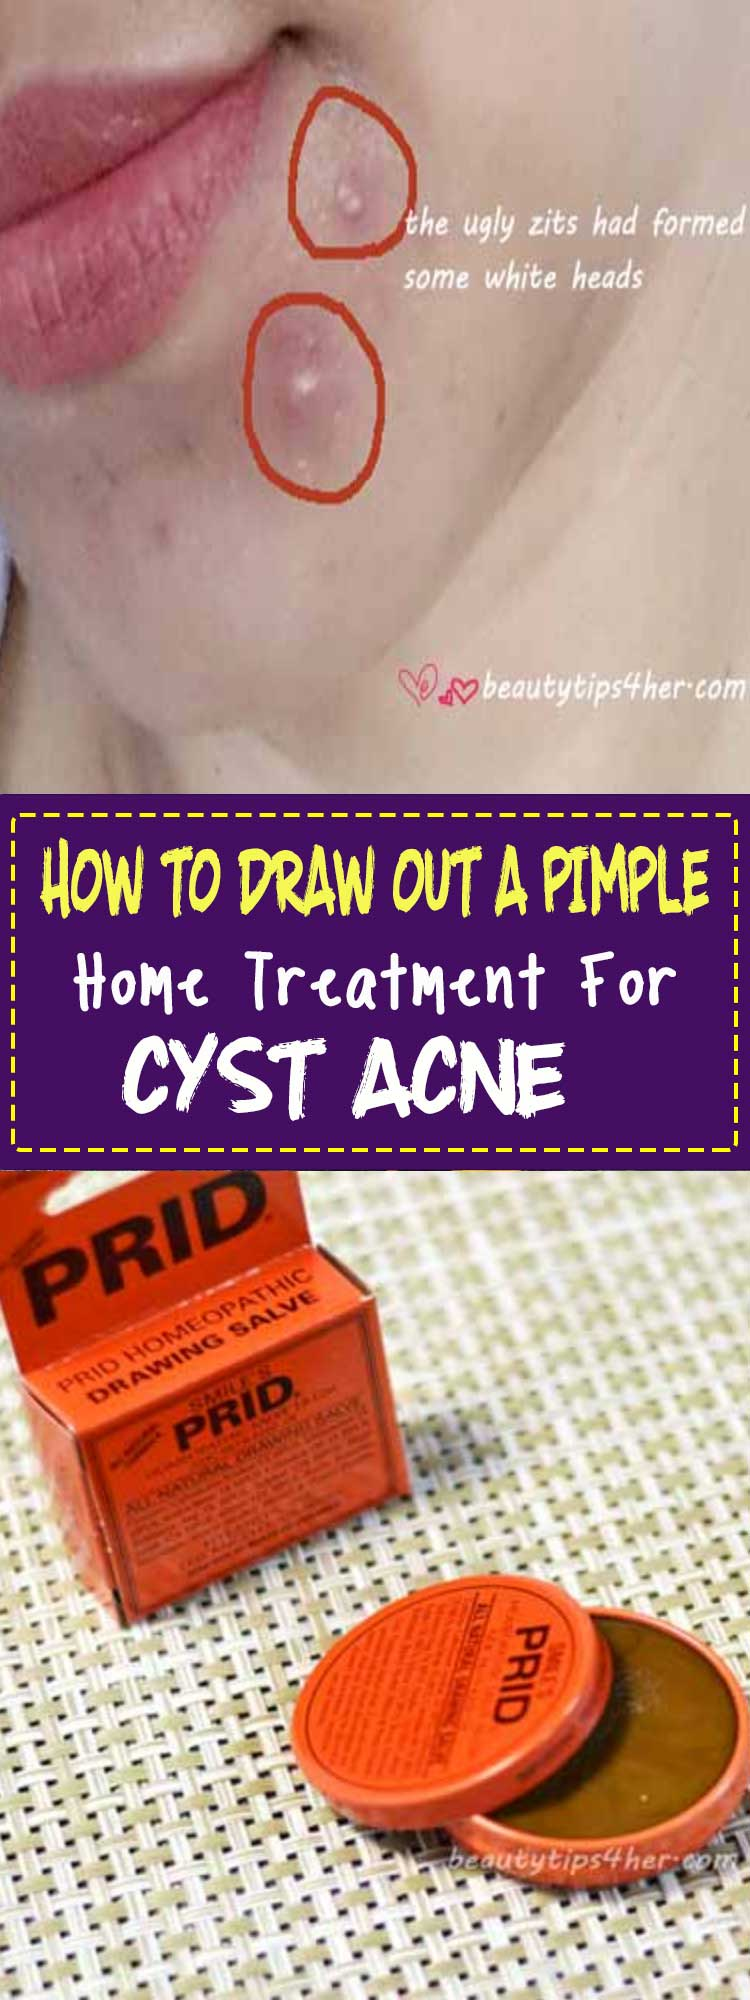 Natural Remedies For Head Cysts